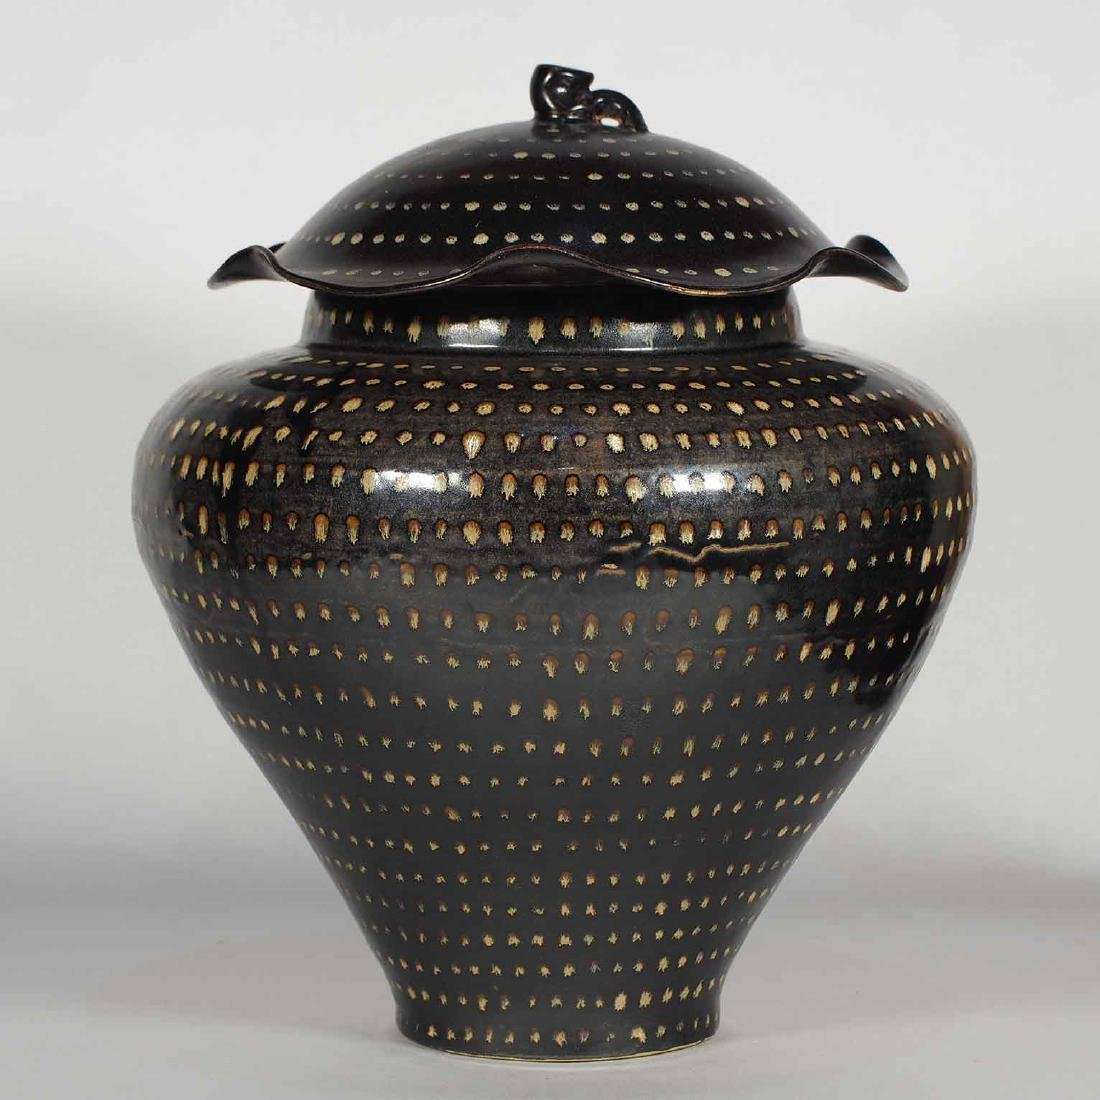 Jizhou Dotted Jar with Lid, Southern Song Dynasty